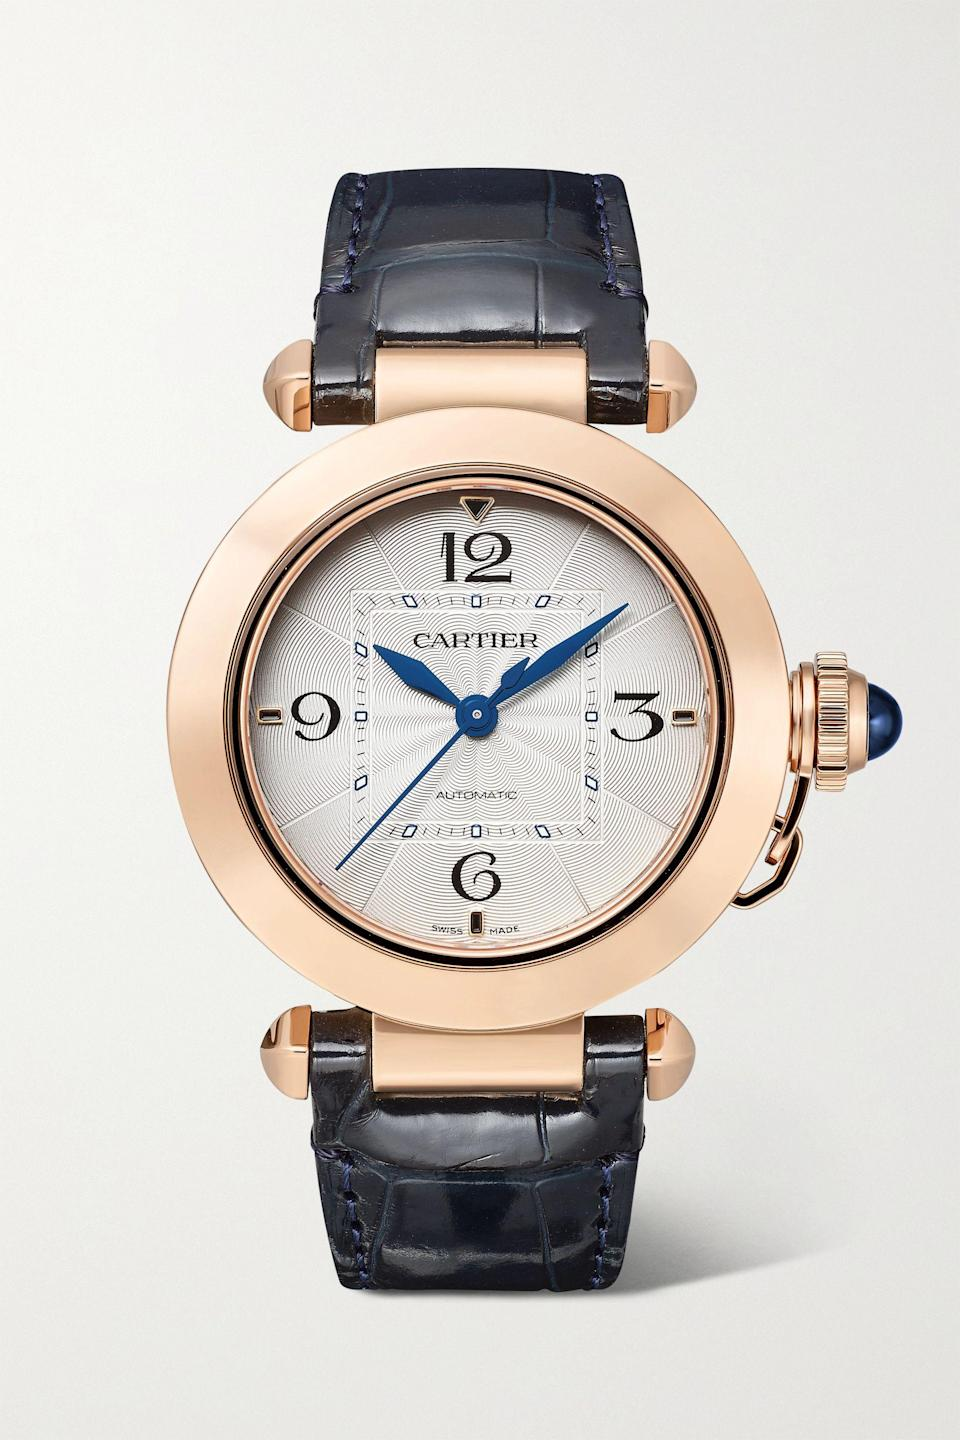 """<p><strong>Cartier</strong></p><p>net-a-porter.com</p><p><strong>$14300.00</strong></p><p><a href=""""https://go.redirectingat.com?id=74968X1596630&url=https%3A%2F%2Fwww.net-a-porter.com%2Fen-us%2Fshop%2Fproduct%2Fcartier%2Fjewelry-and-watches%2Fwatches%2Fpasha-de-cartier-automatic-35mm-18-karat-rose-gold-and-alligator-watch%2F23471478576690346&sref=https%3A%2F%2Fwww.harpersbazaar.com%2Ffashion%2Ftrends%2Fg37039475%2Fgifts-for-new-moms%2F"""" rel=""""nofollow noopener"""" target=""""_blank"""" data-ylk=""""slk:Shop Now"""" class=""""link rapid-noclick-resp"""">Shop Now</a></p><p>Don't make her sleep next to her phone to know what time it is.</p>"""